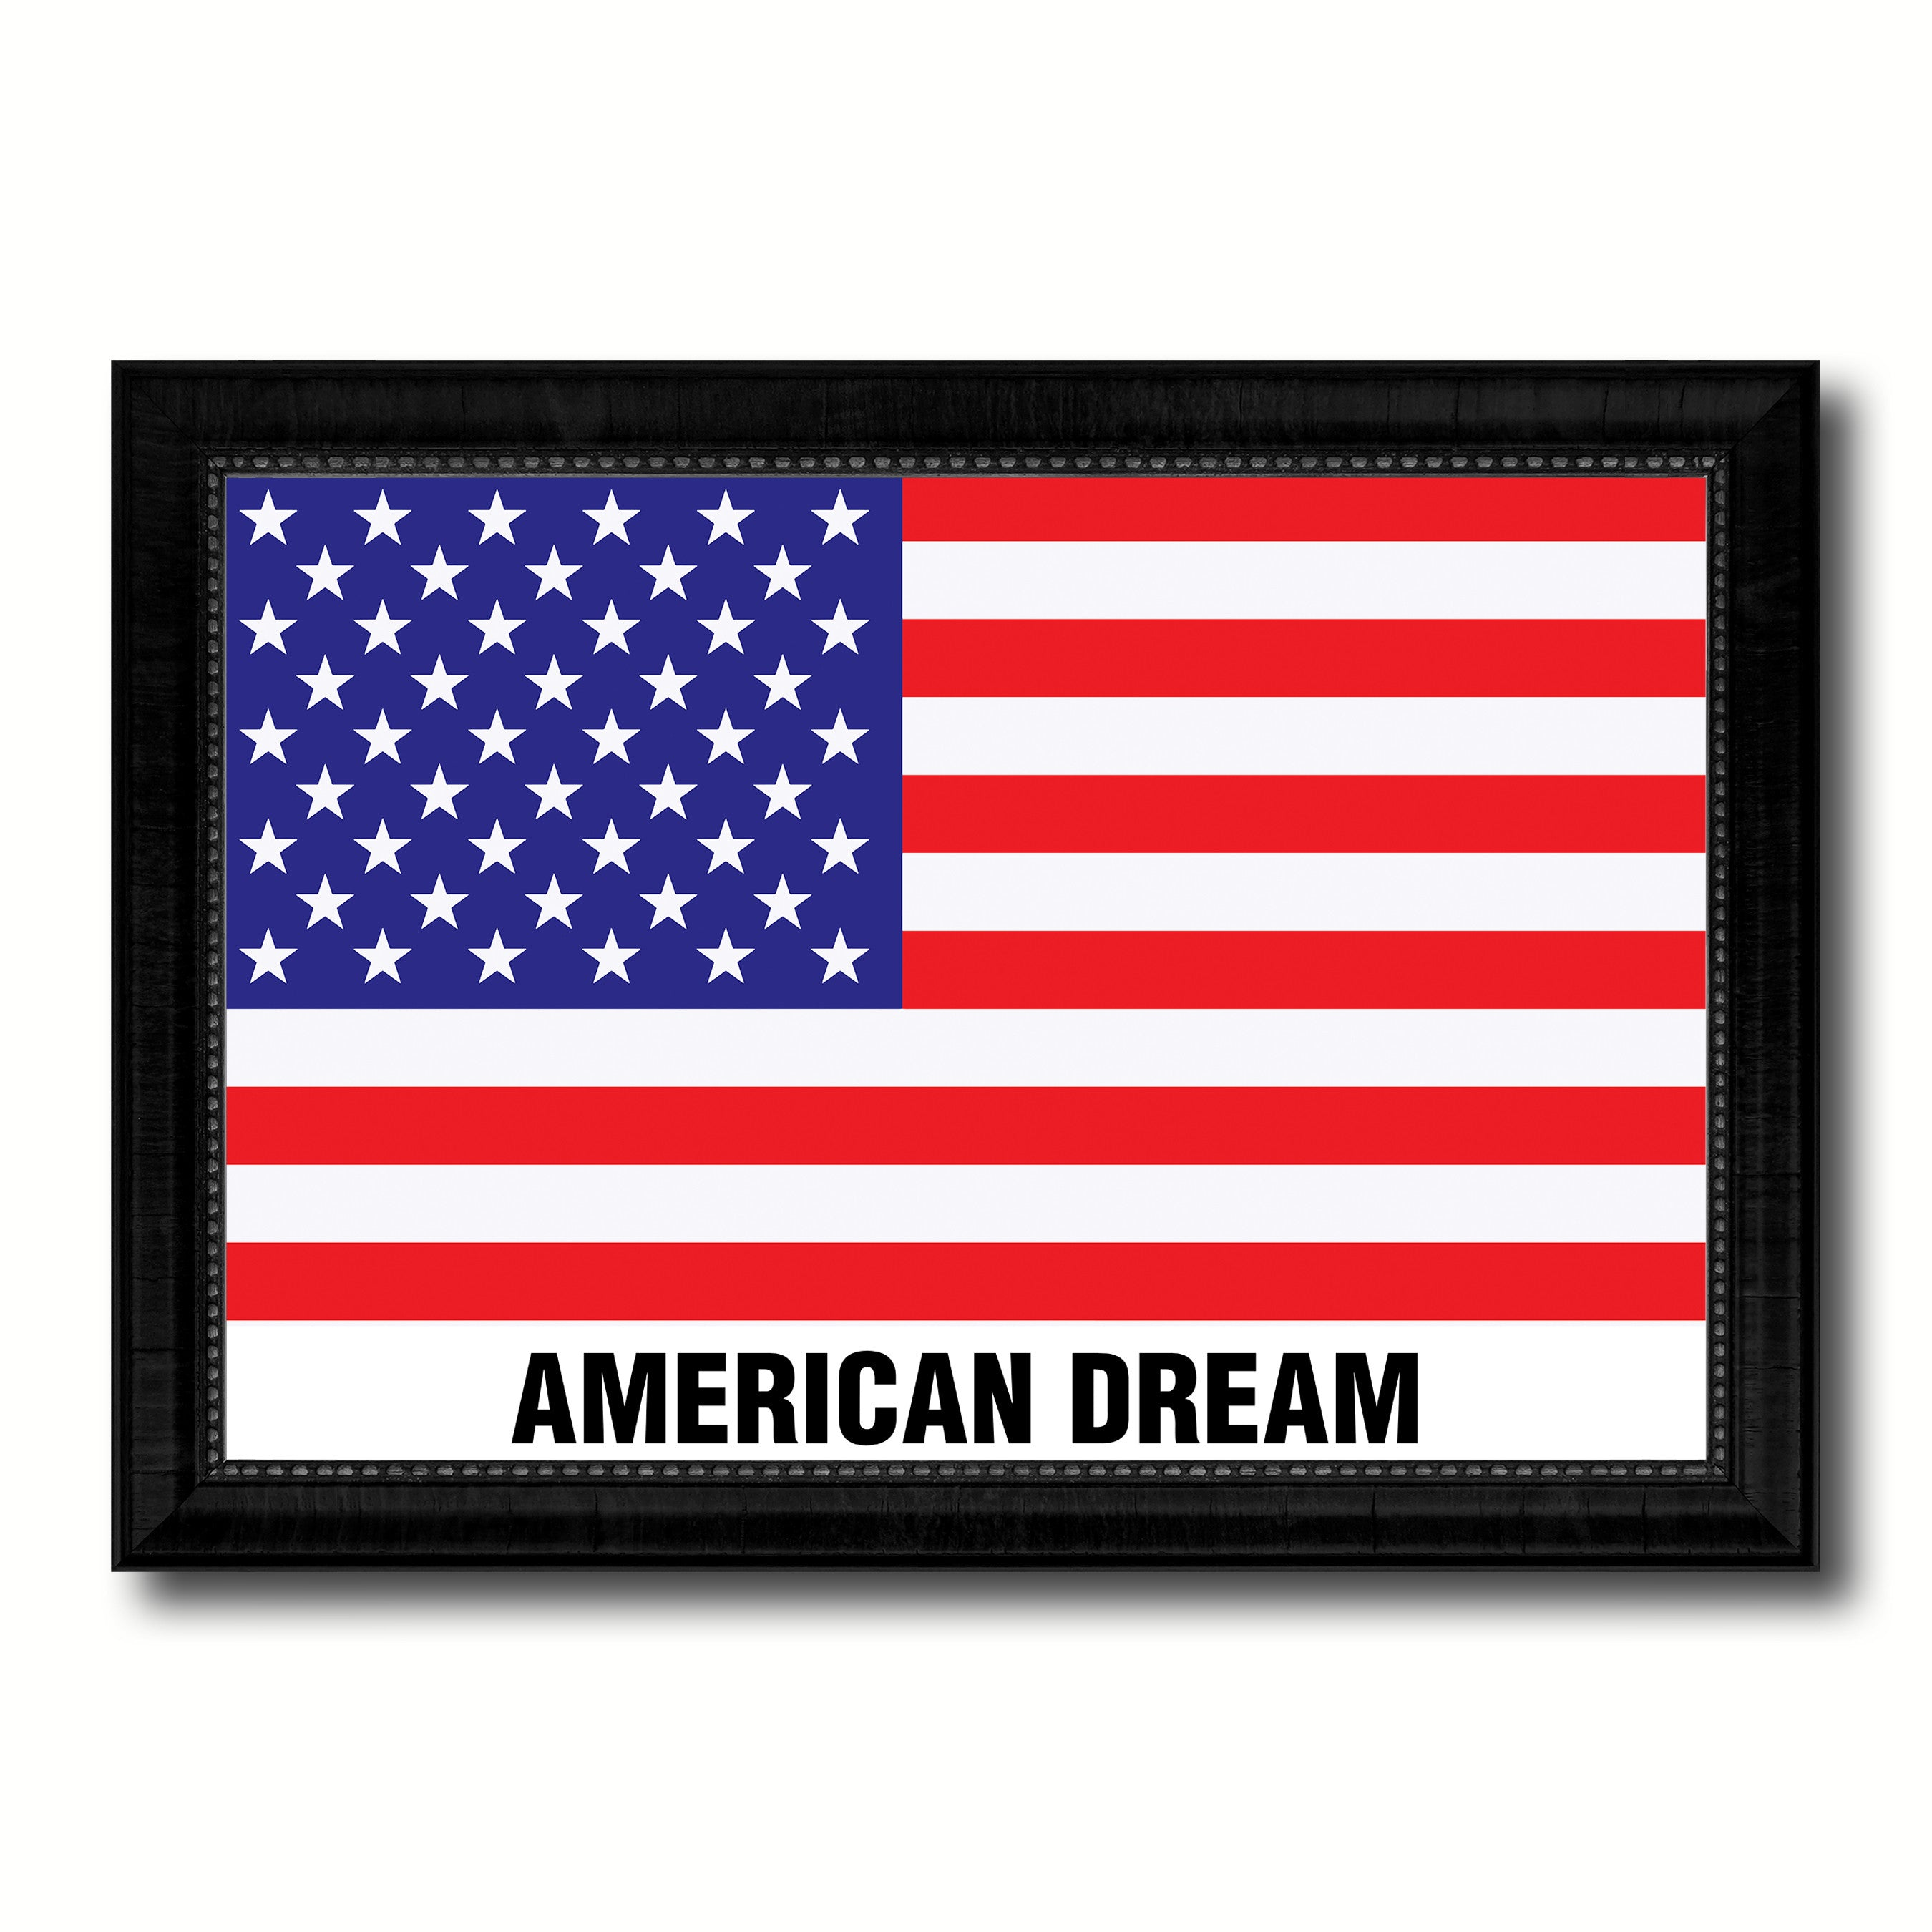 USA American Dream Flag Canvas Print Black Picture Frame Gifts Home Decor Wall Art